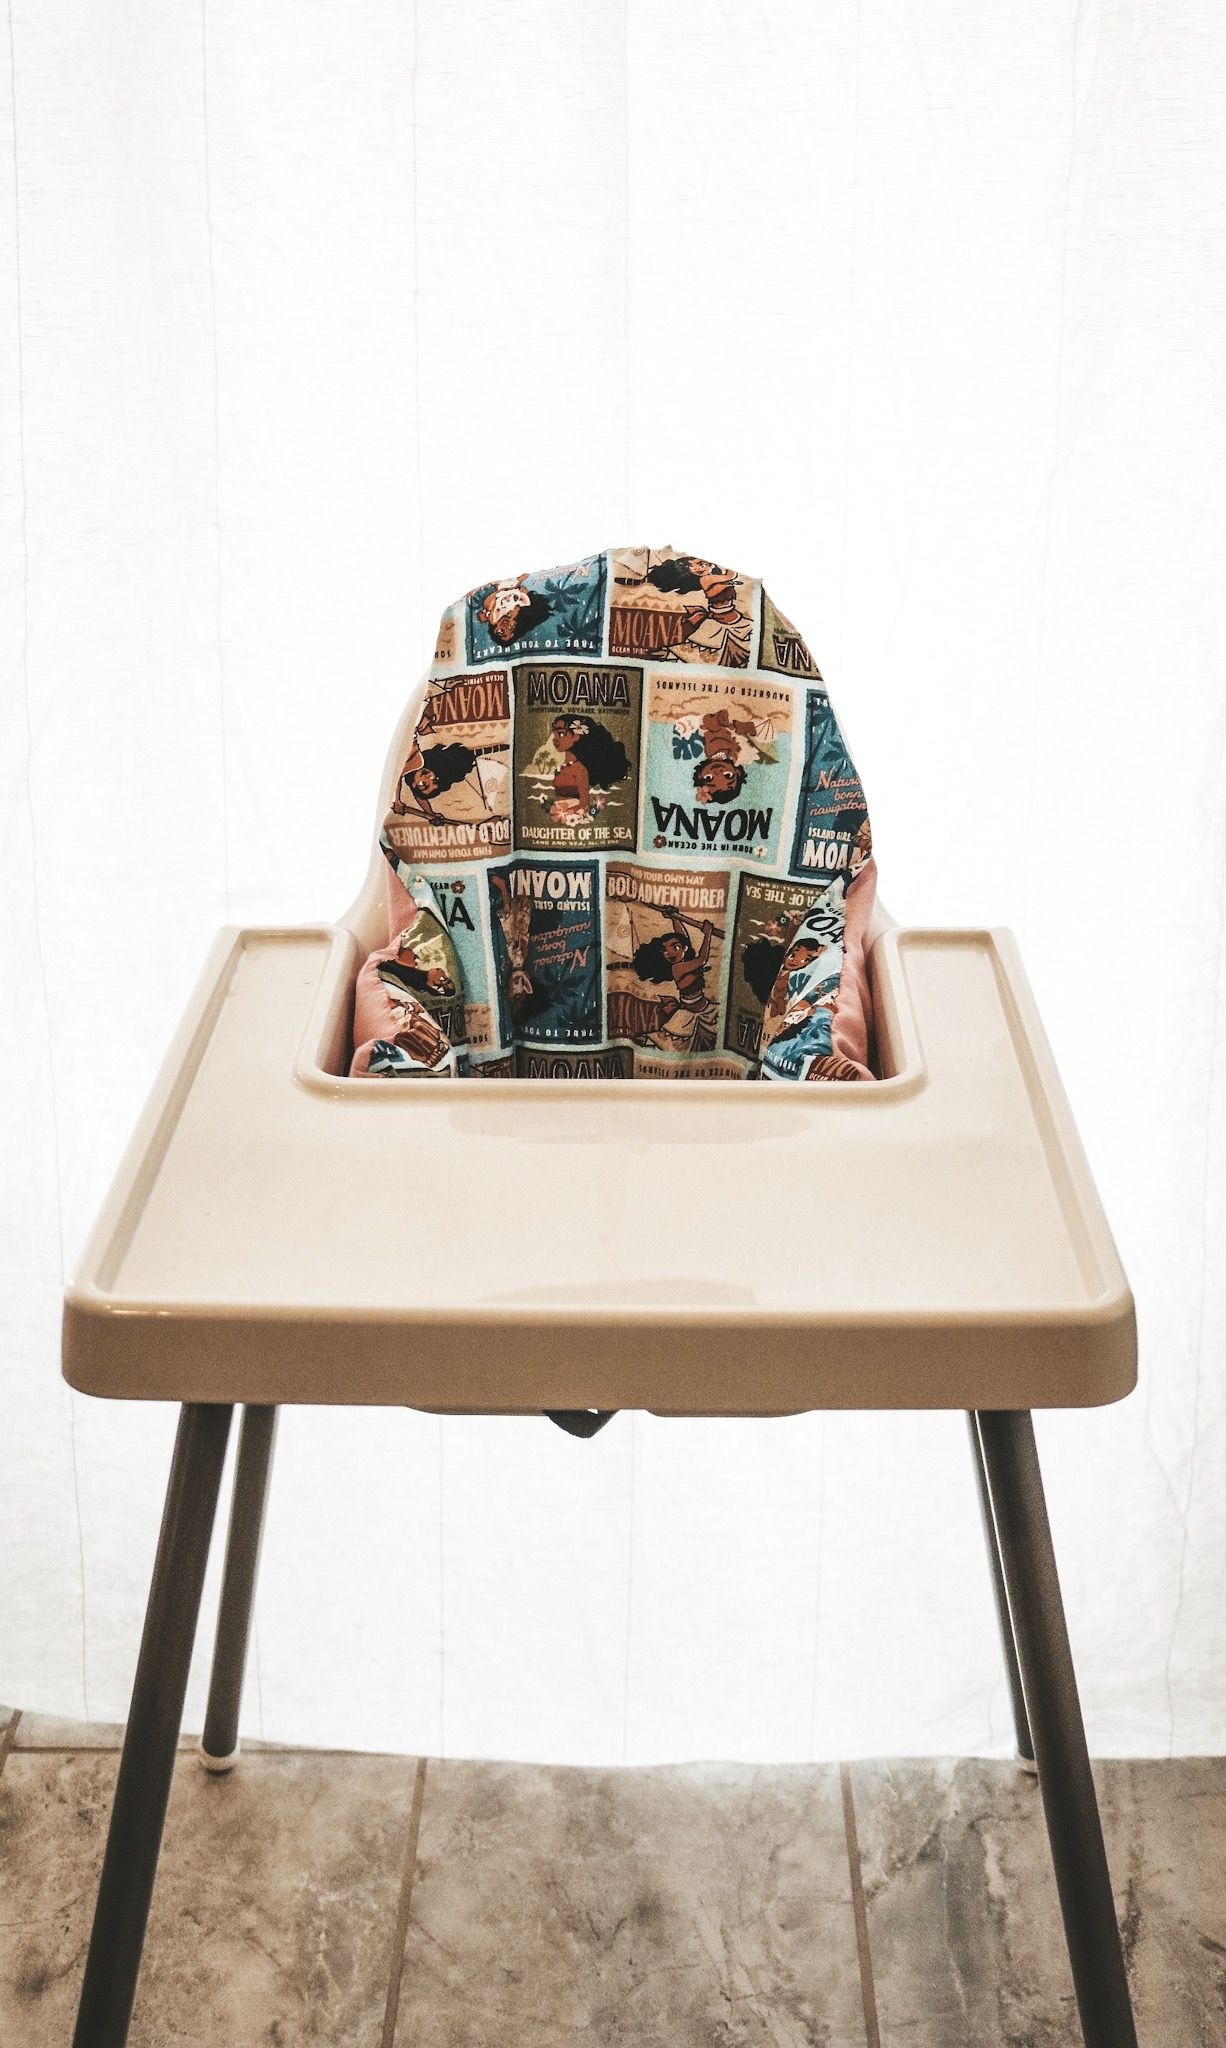 DIY IKEA highchair cover. Disney fabric that covers the